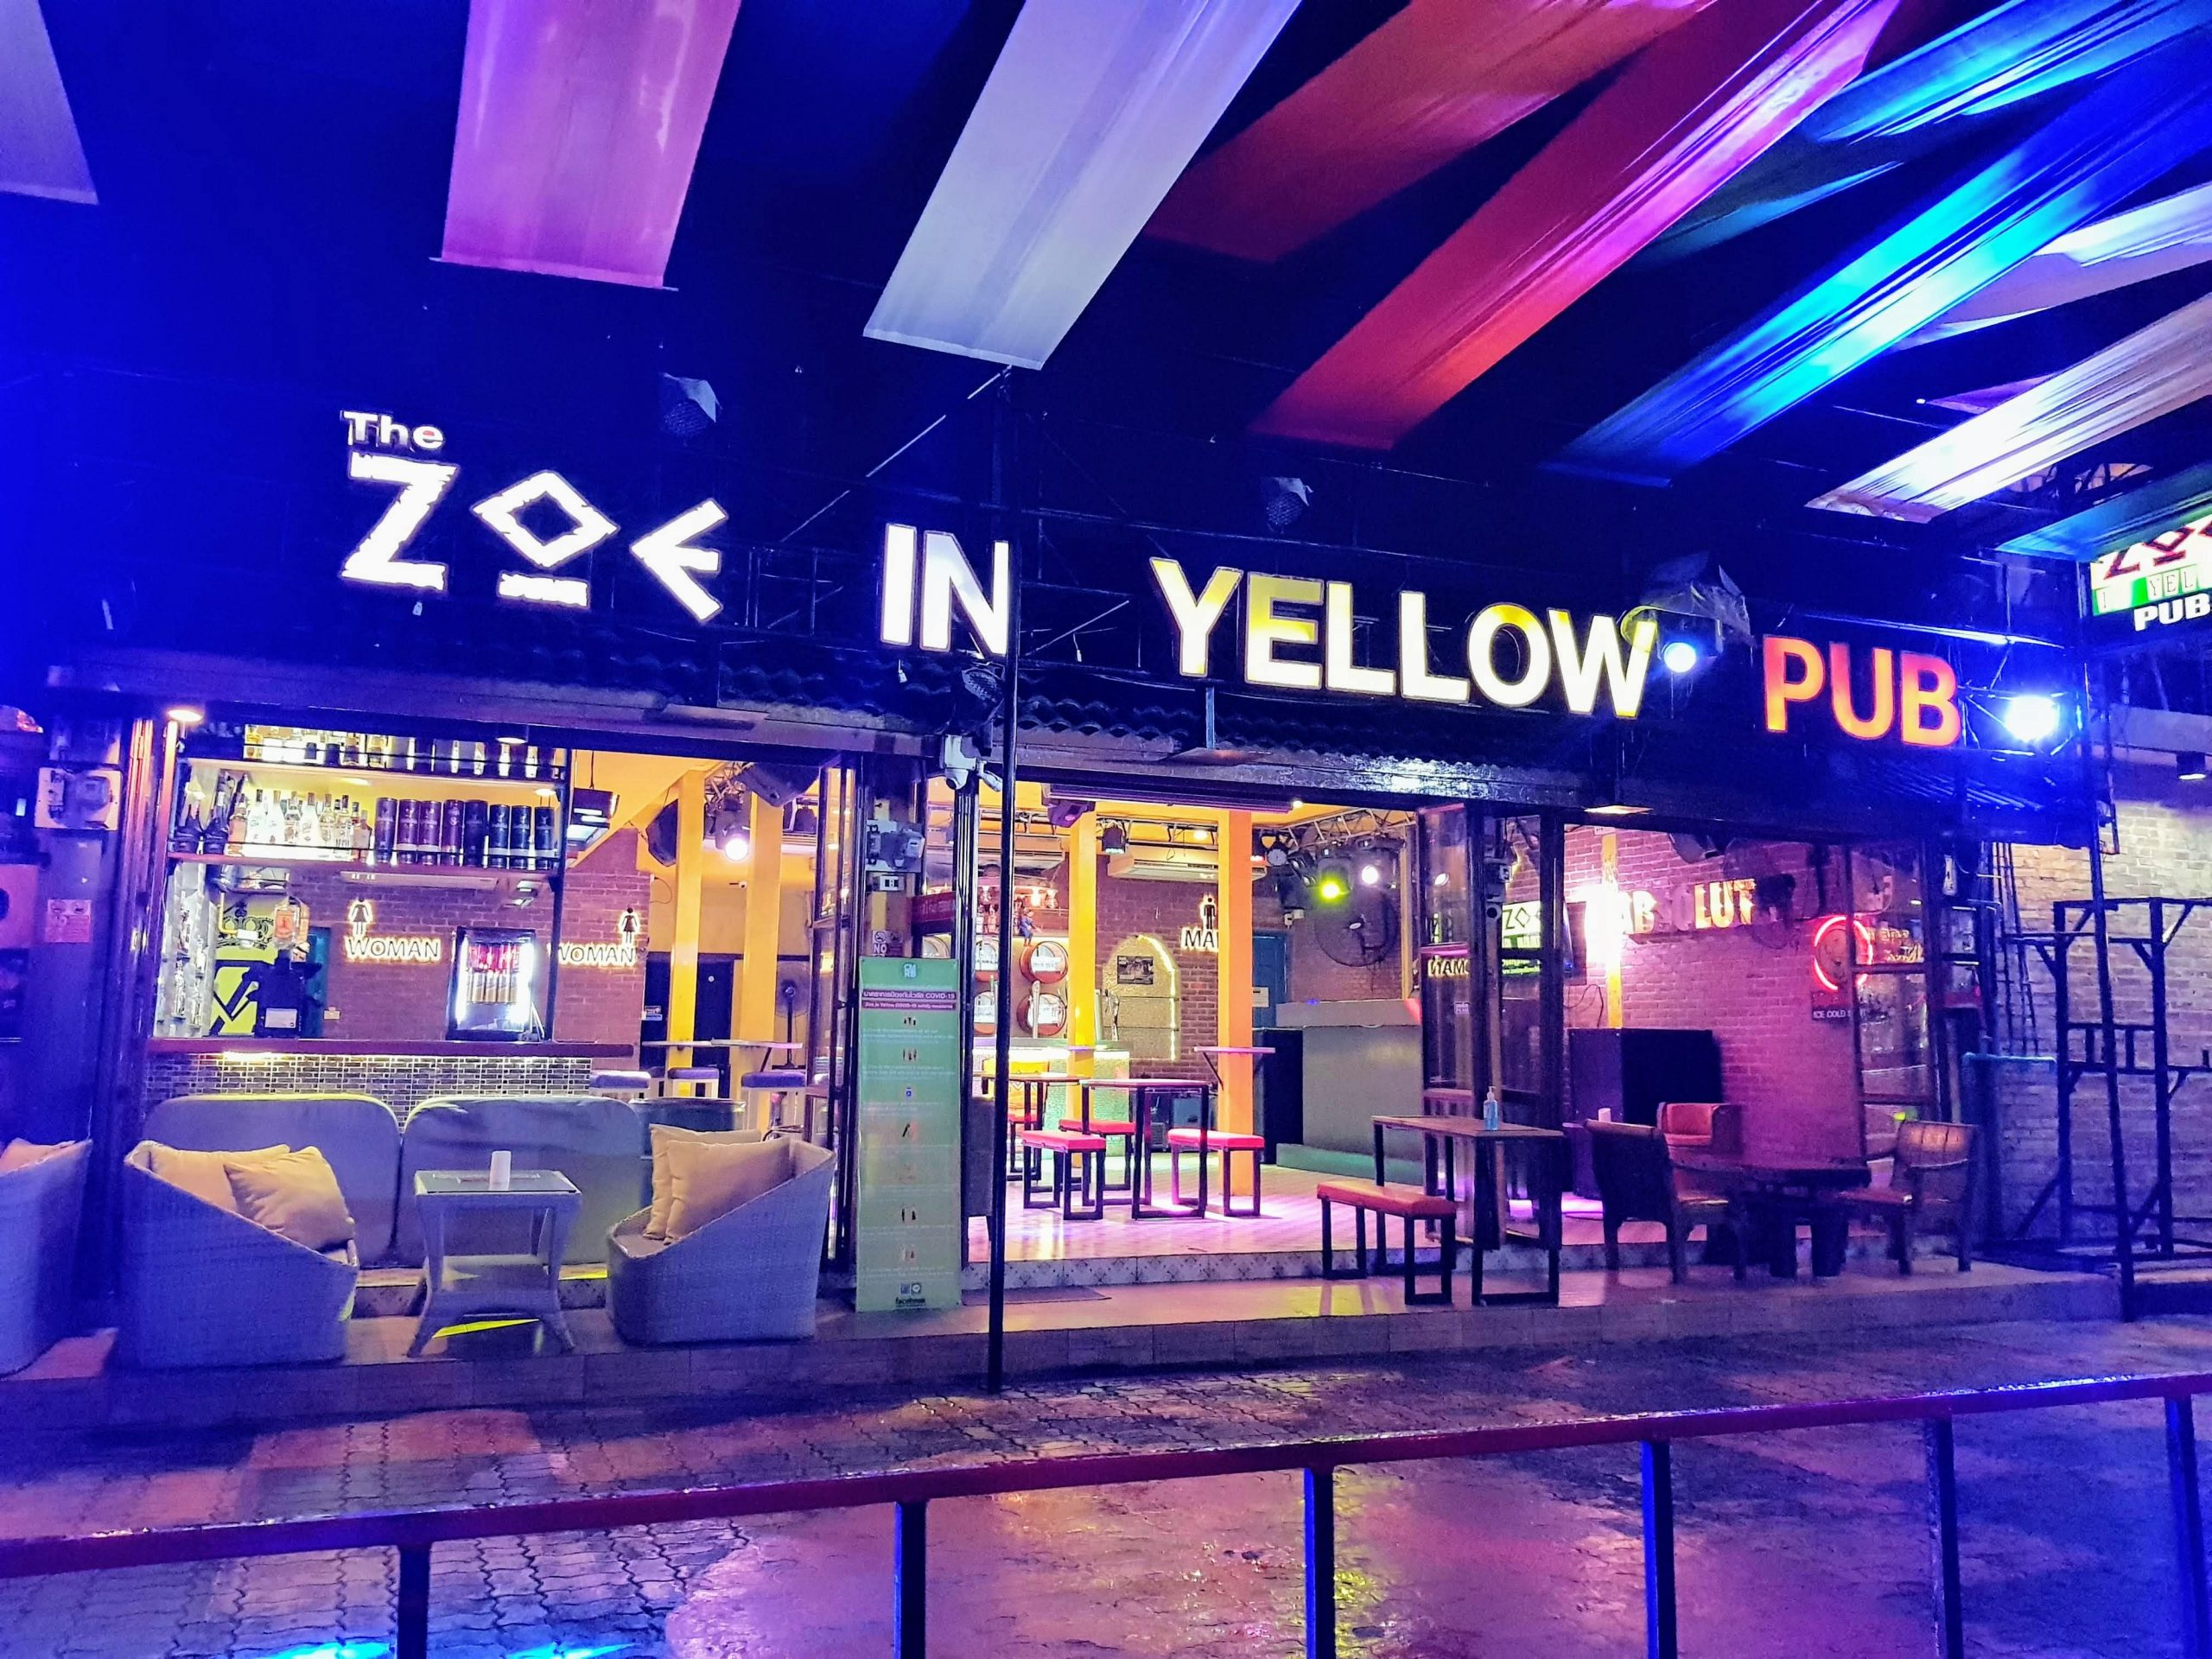 opening night at Zoe in Yellow